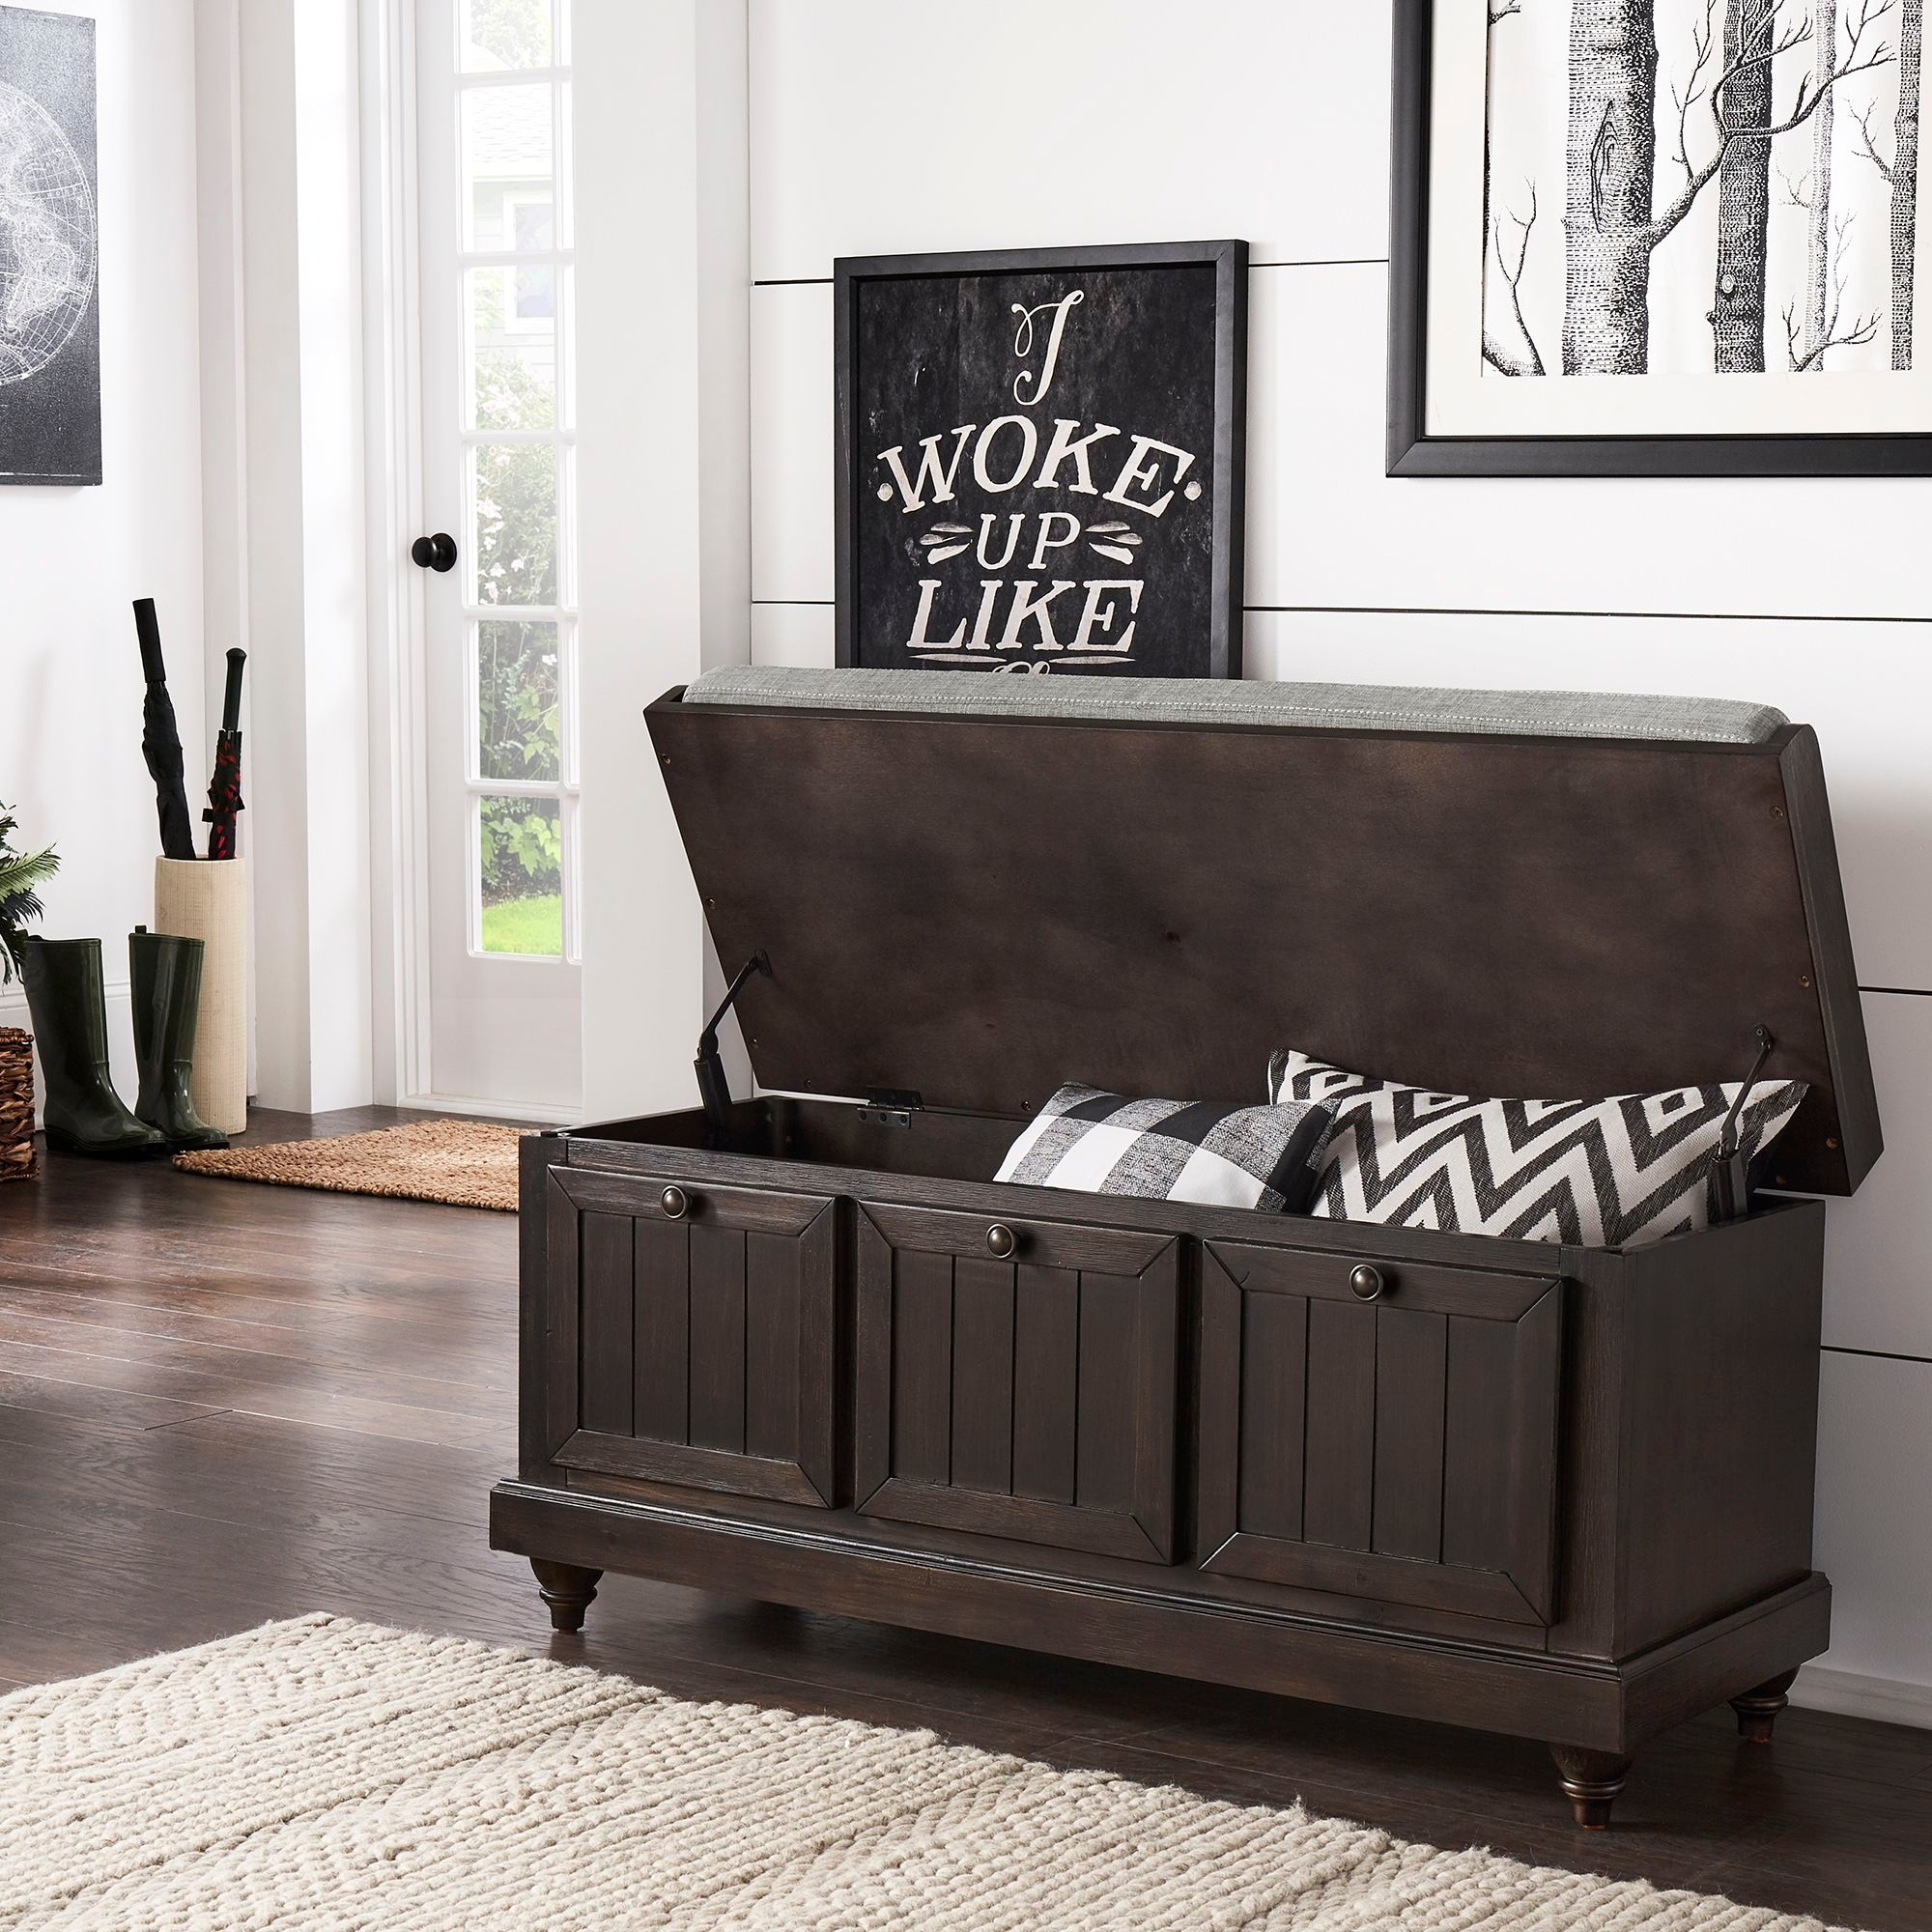 Picture of: Granger Storage Bench With Linen Seat Cushion By Inspire Q Classic On Sale Overstock 30034440